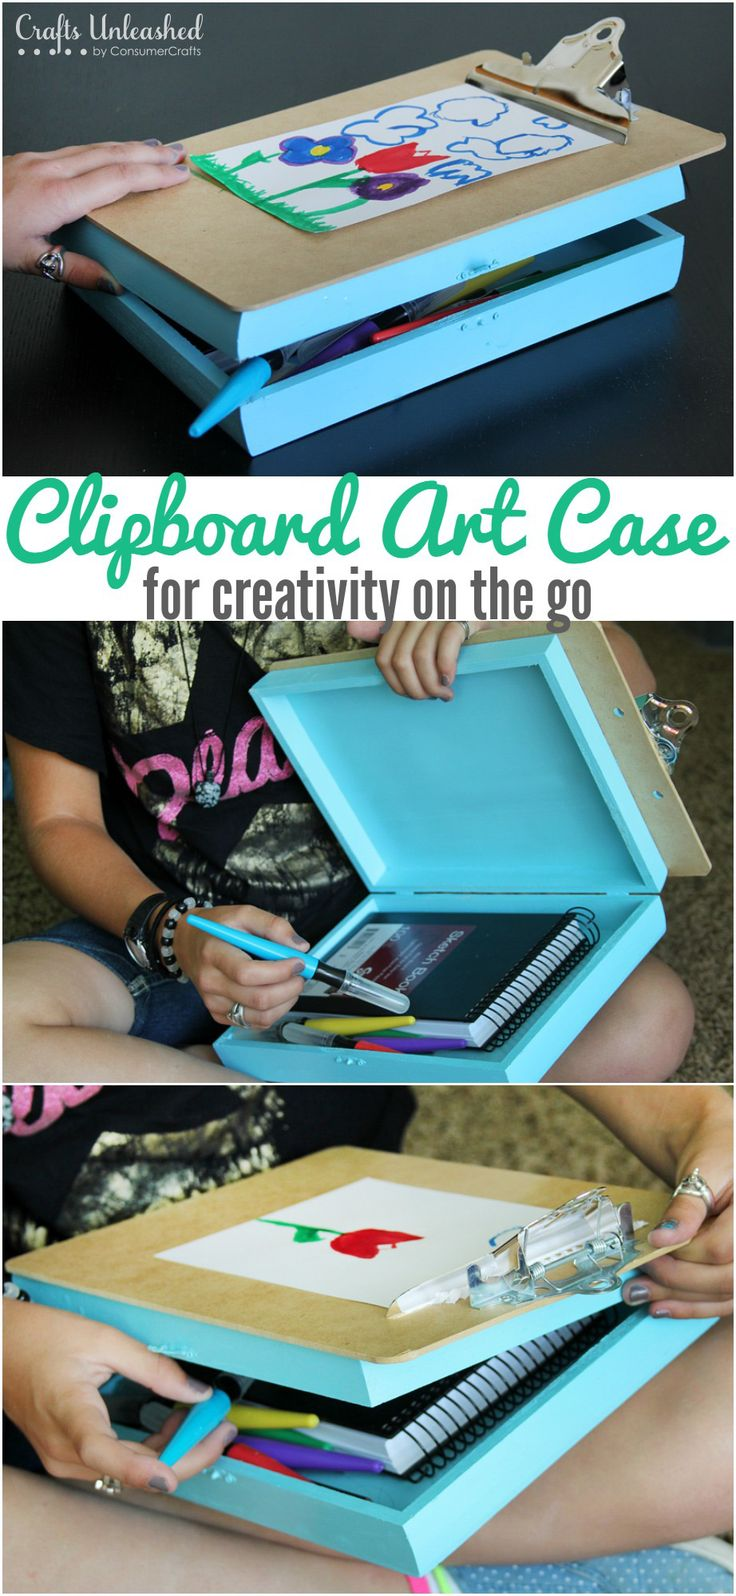 Keep your kids entertained AND spark their creativity while on the go with this DIY clipboard road trip case!